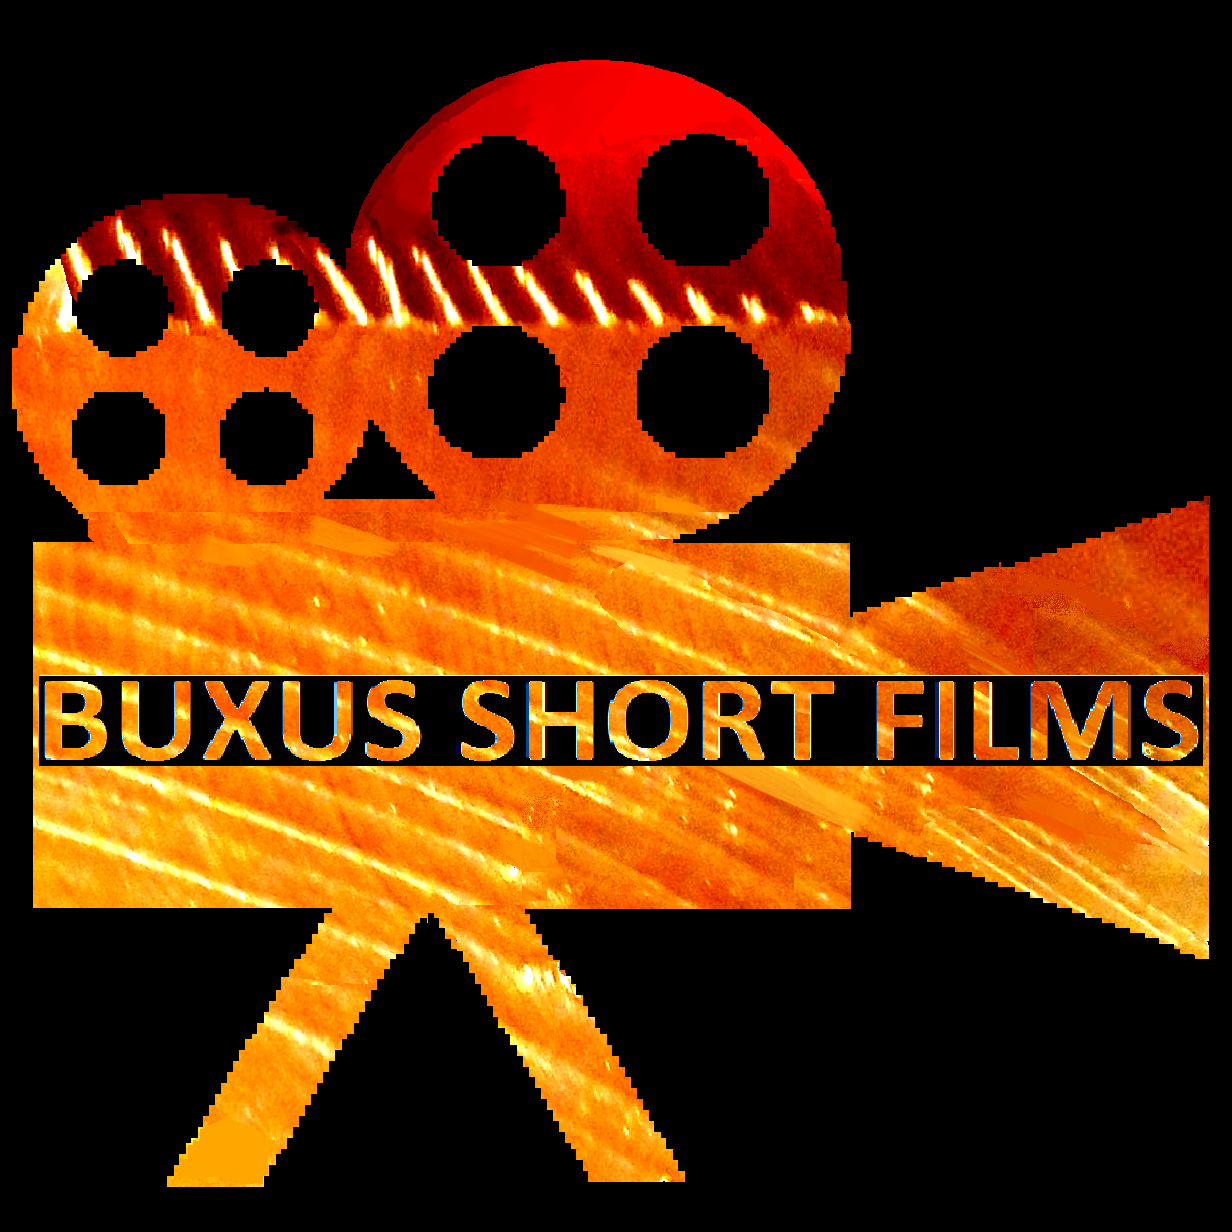 BUXUS SHORT FILMS